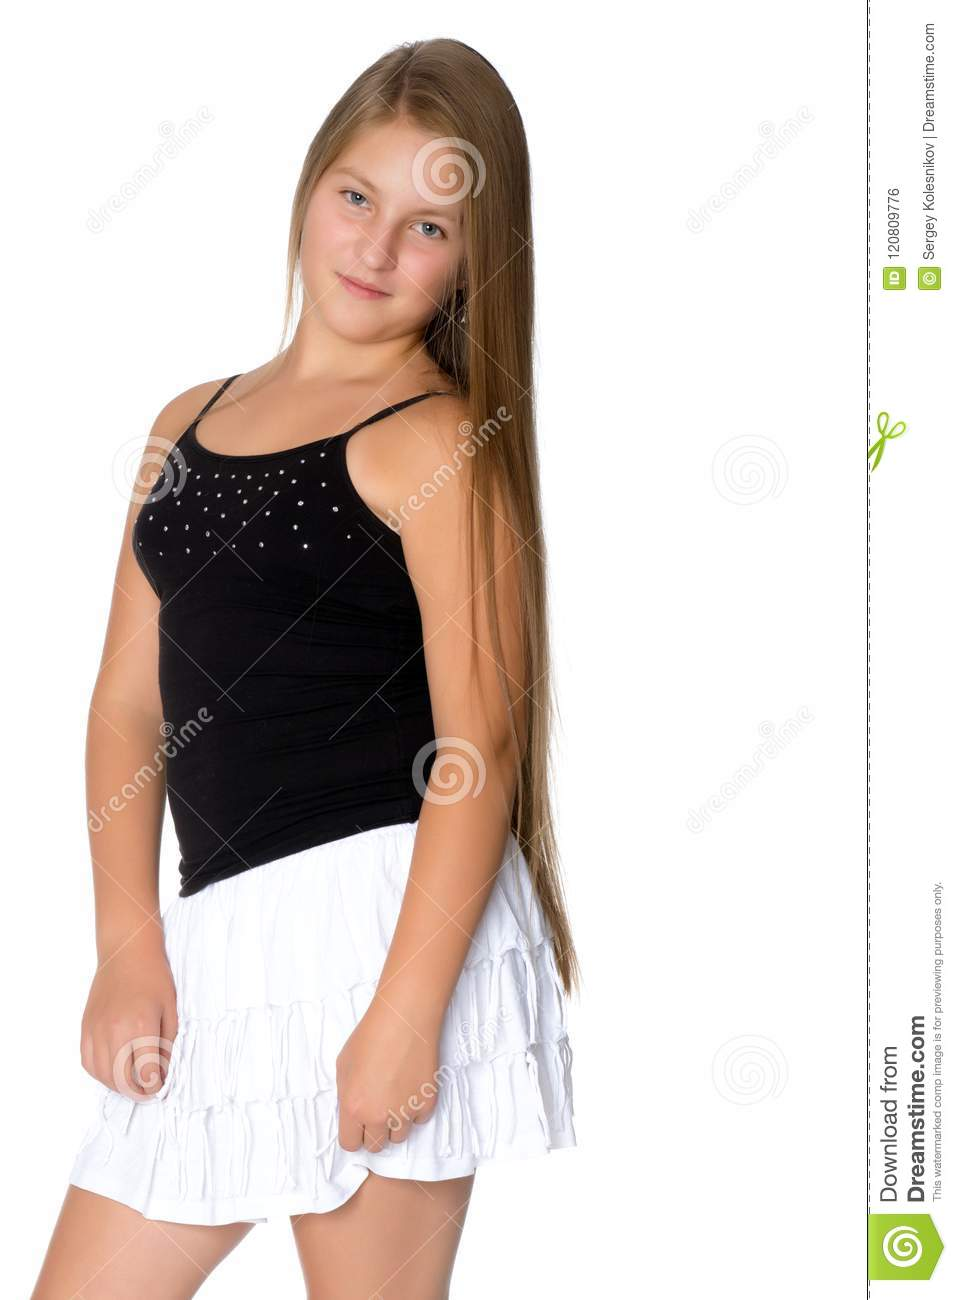 A Teenage Girl In A Short Dress. Stock Photo - Image of lifestyle ... 69e9e7ab6767